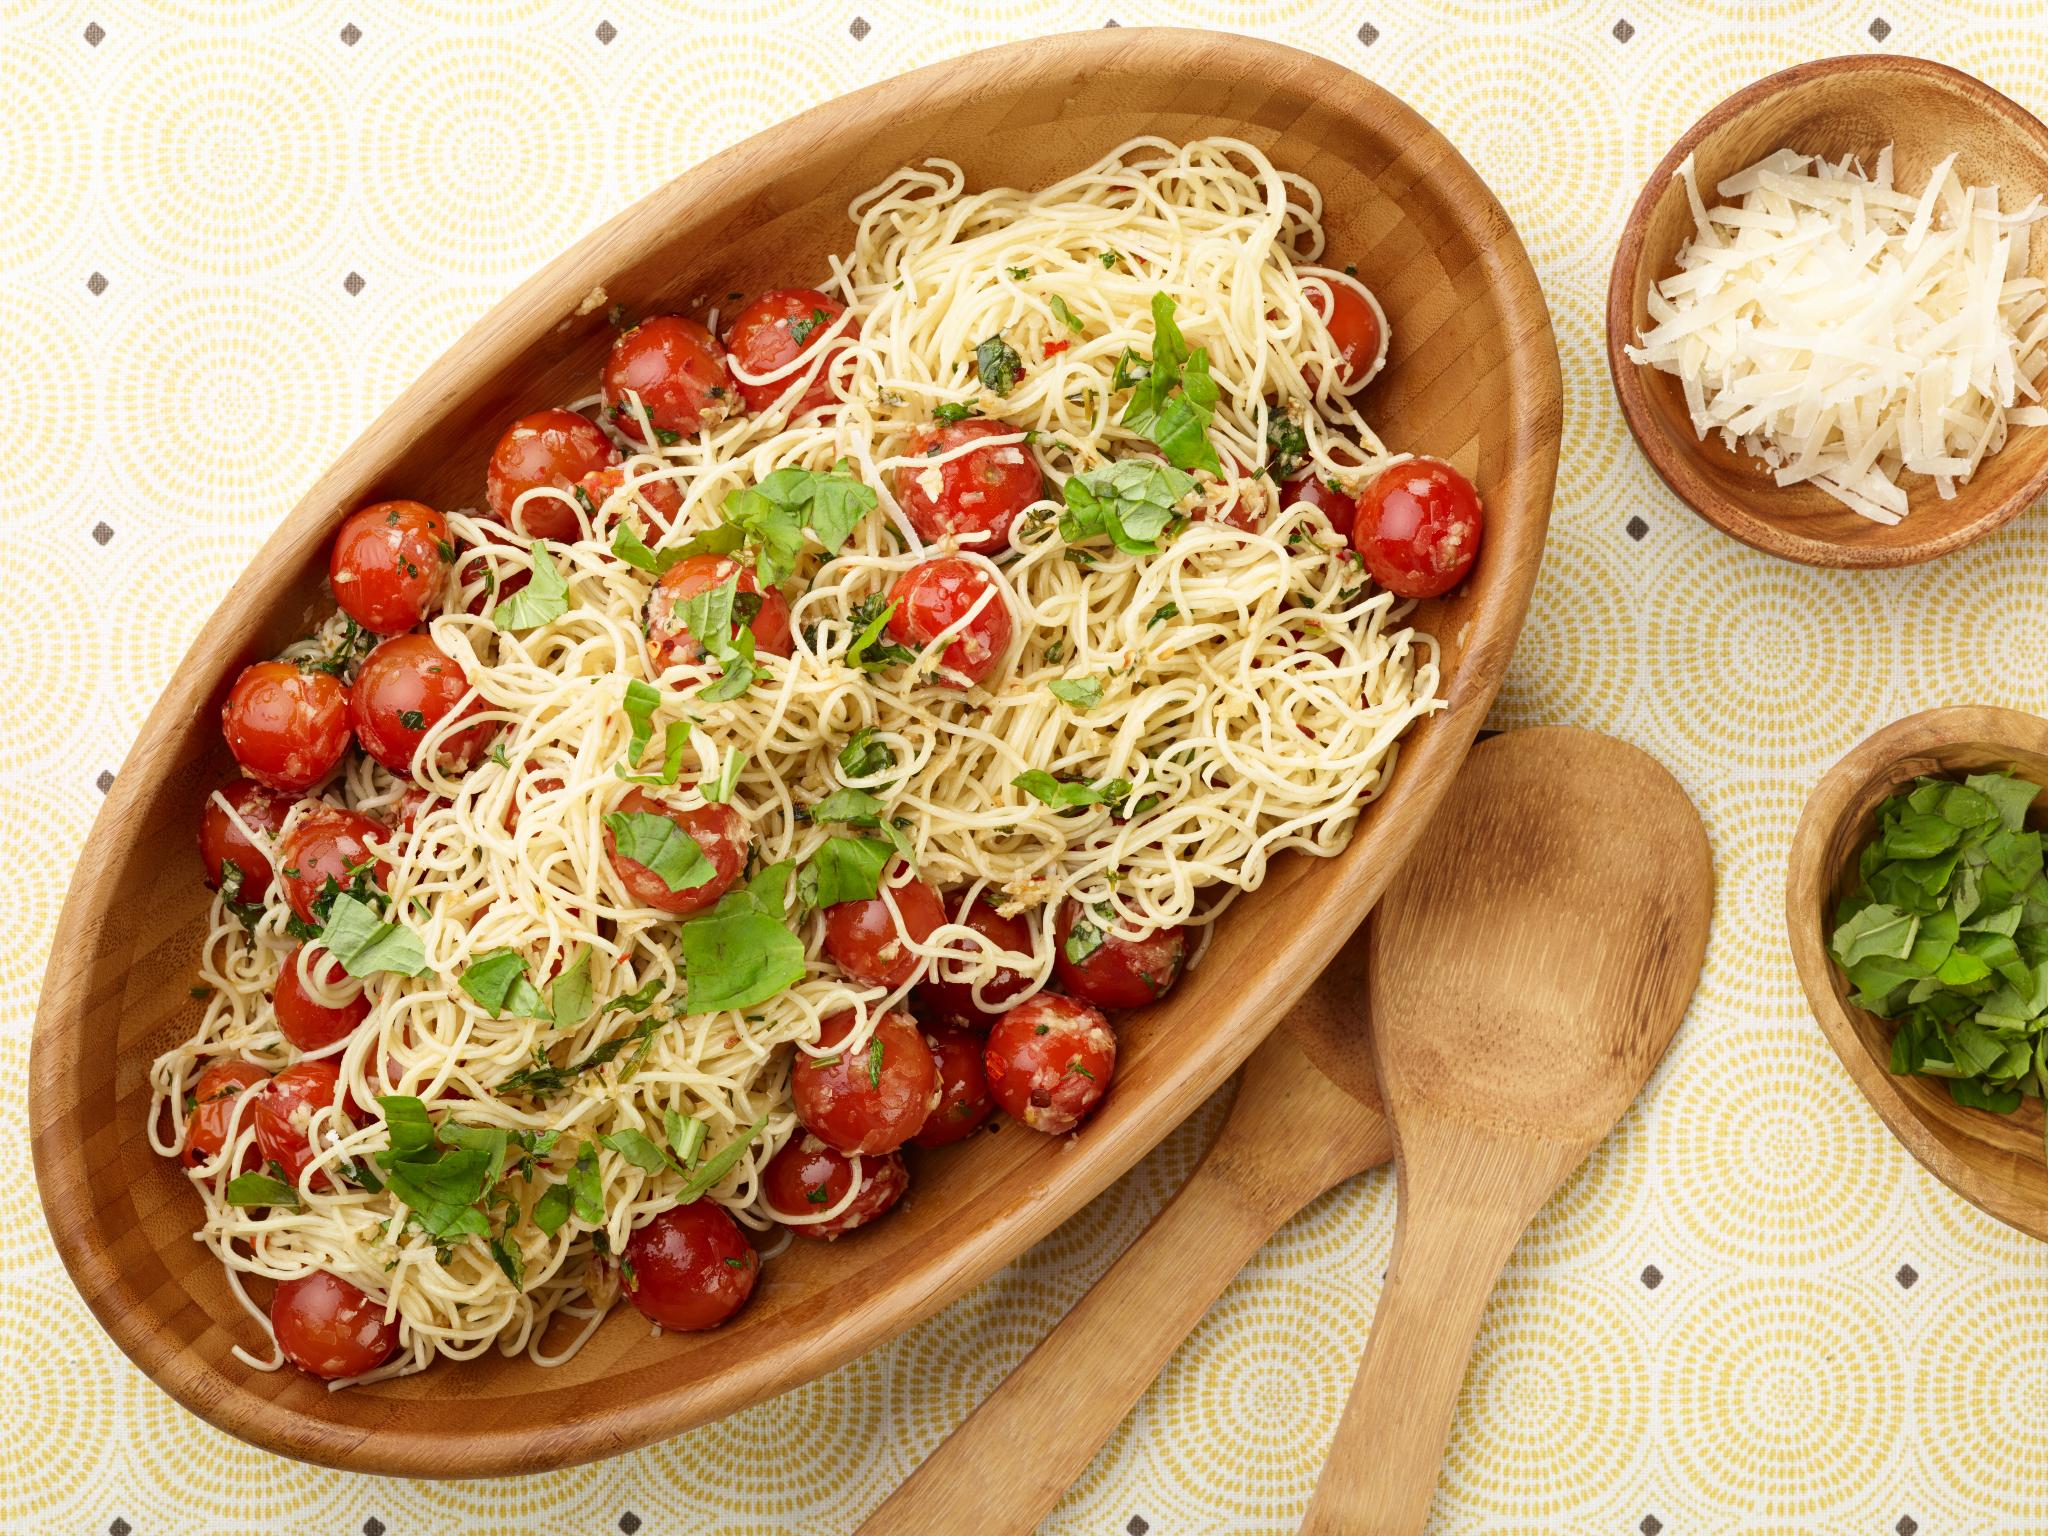 Recipe of the Day: @inagarten's Capellini with Tomatoes and Basil �� https://t.co/vpmfO8Egtf. https://t.co/hN17TX6TKt